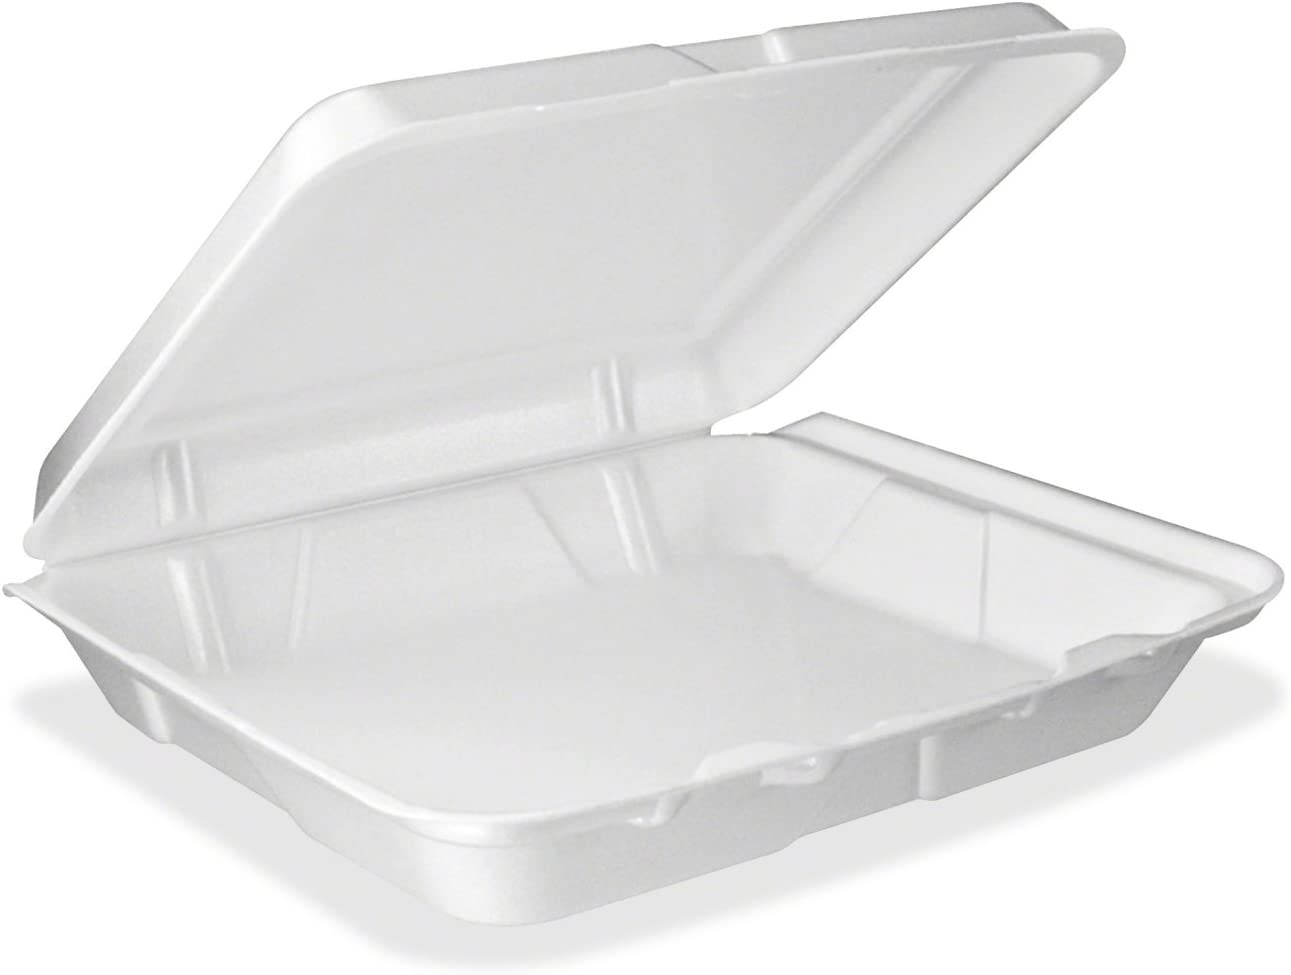 Dart 95HT1, 9x9x3-Inch Performer White Single Compartment Foam Container With A Hinged Lid, Carryout Food Disposable Containers (50)